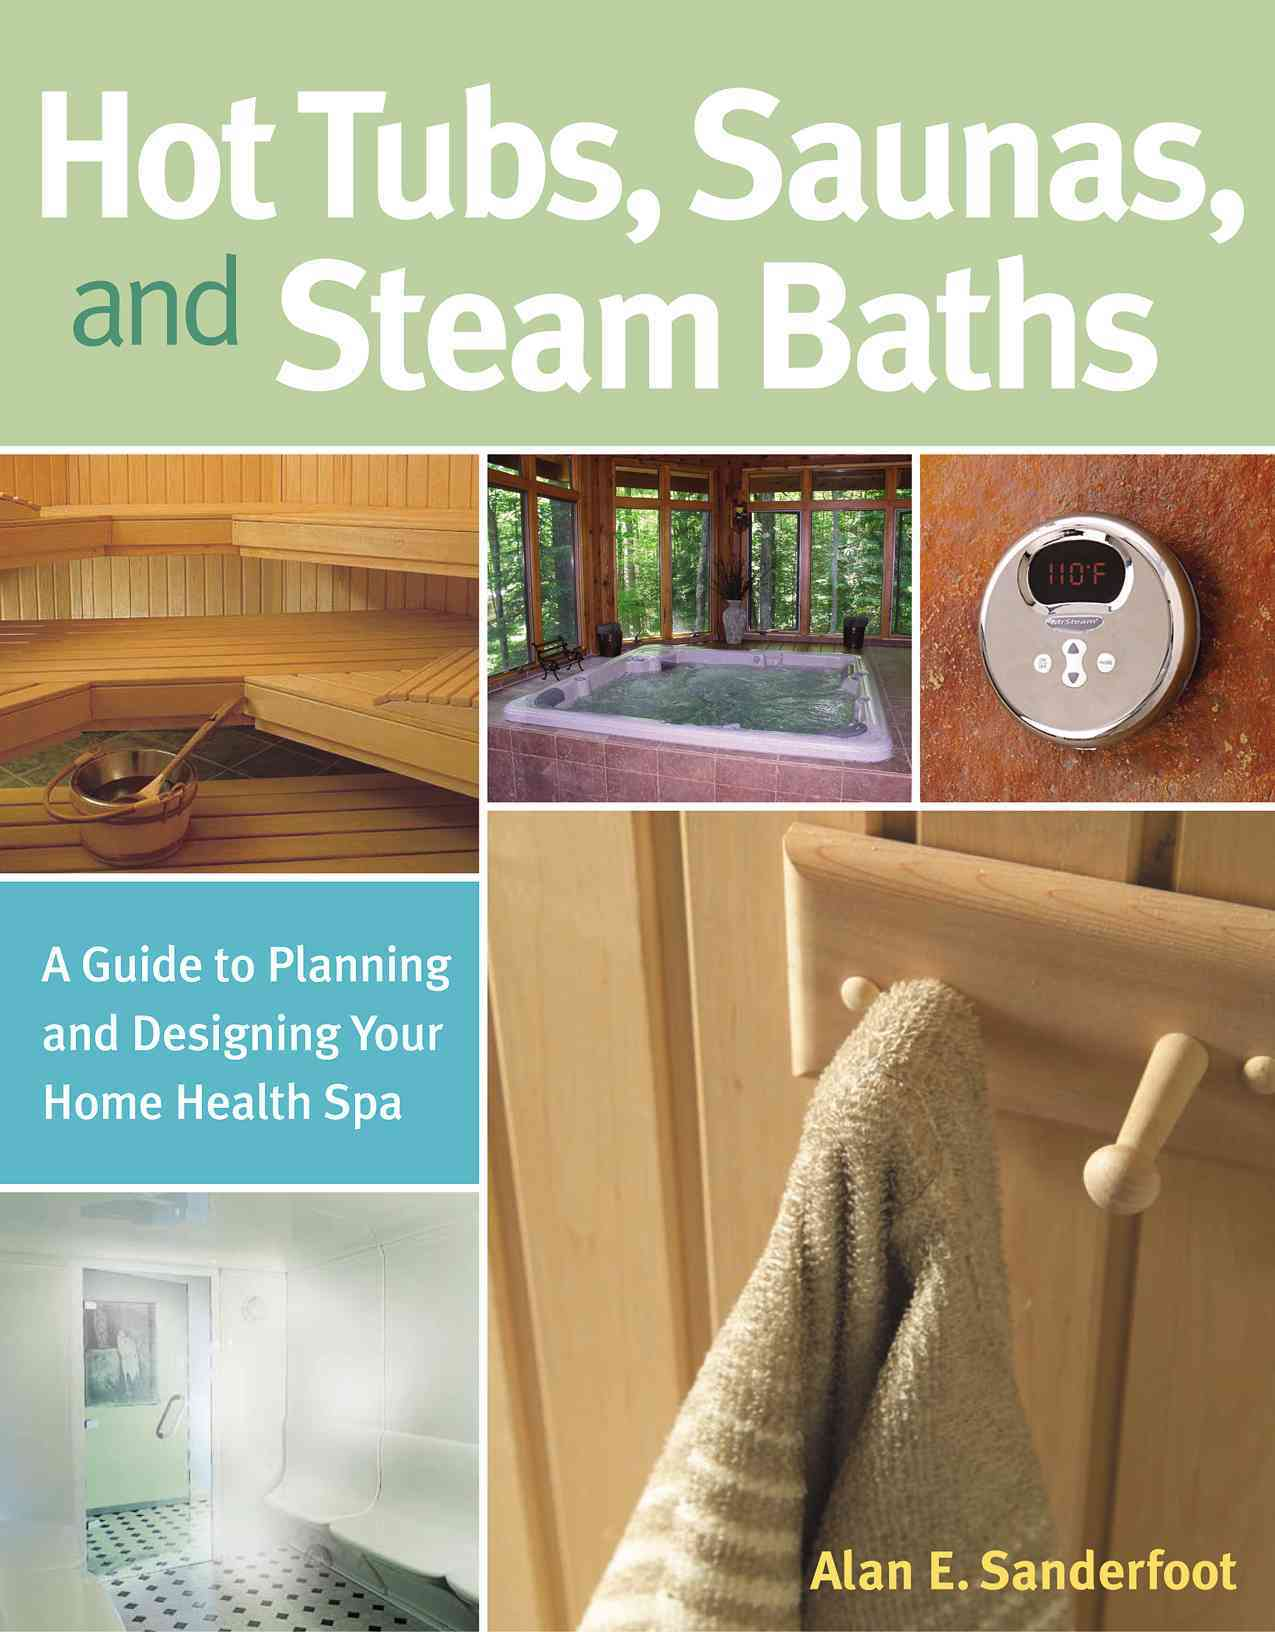 Hot Tubs, Saunas & Steam Baths: A Guide To Planning And Designing Your Home Health Spa (Paperback)